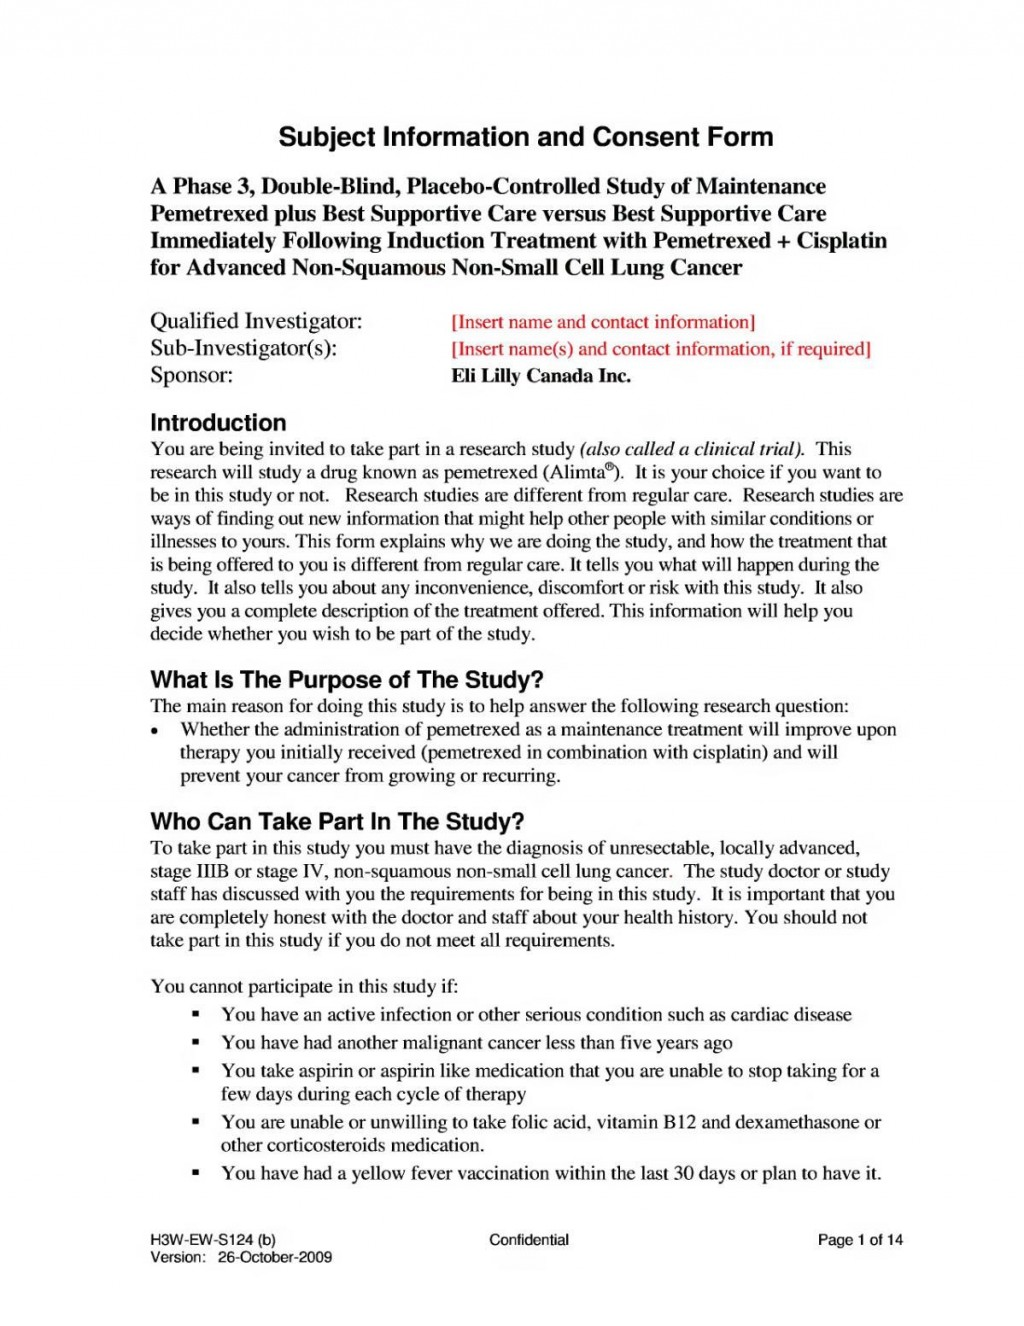 007 Wondrou Medical Consent Form Template Image  Templates Informed Sample South Africa TreatmentLarge